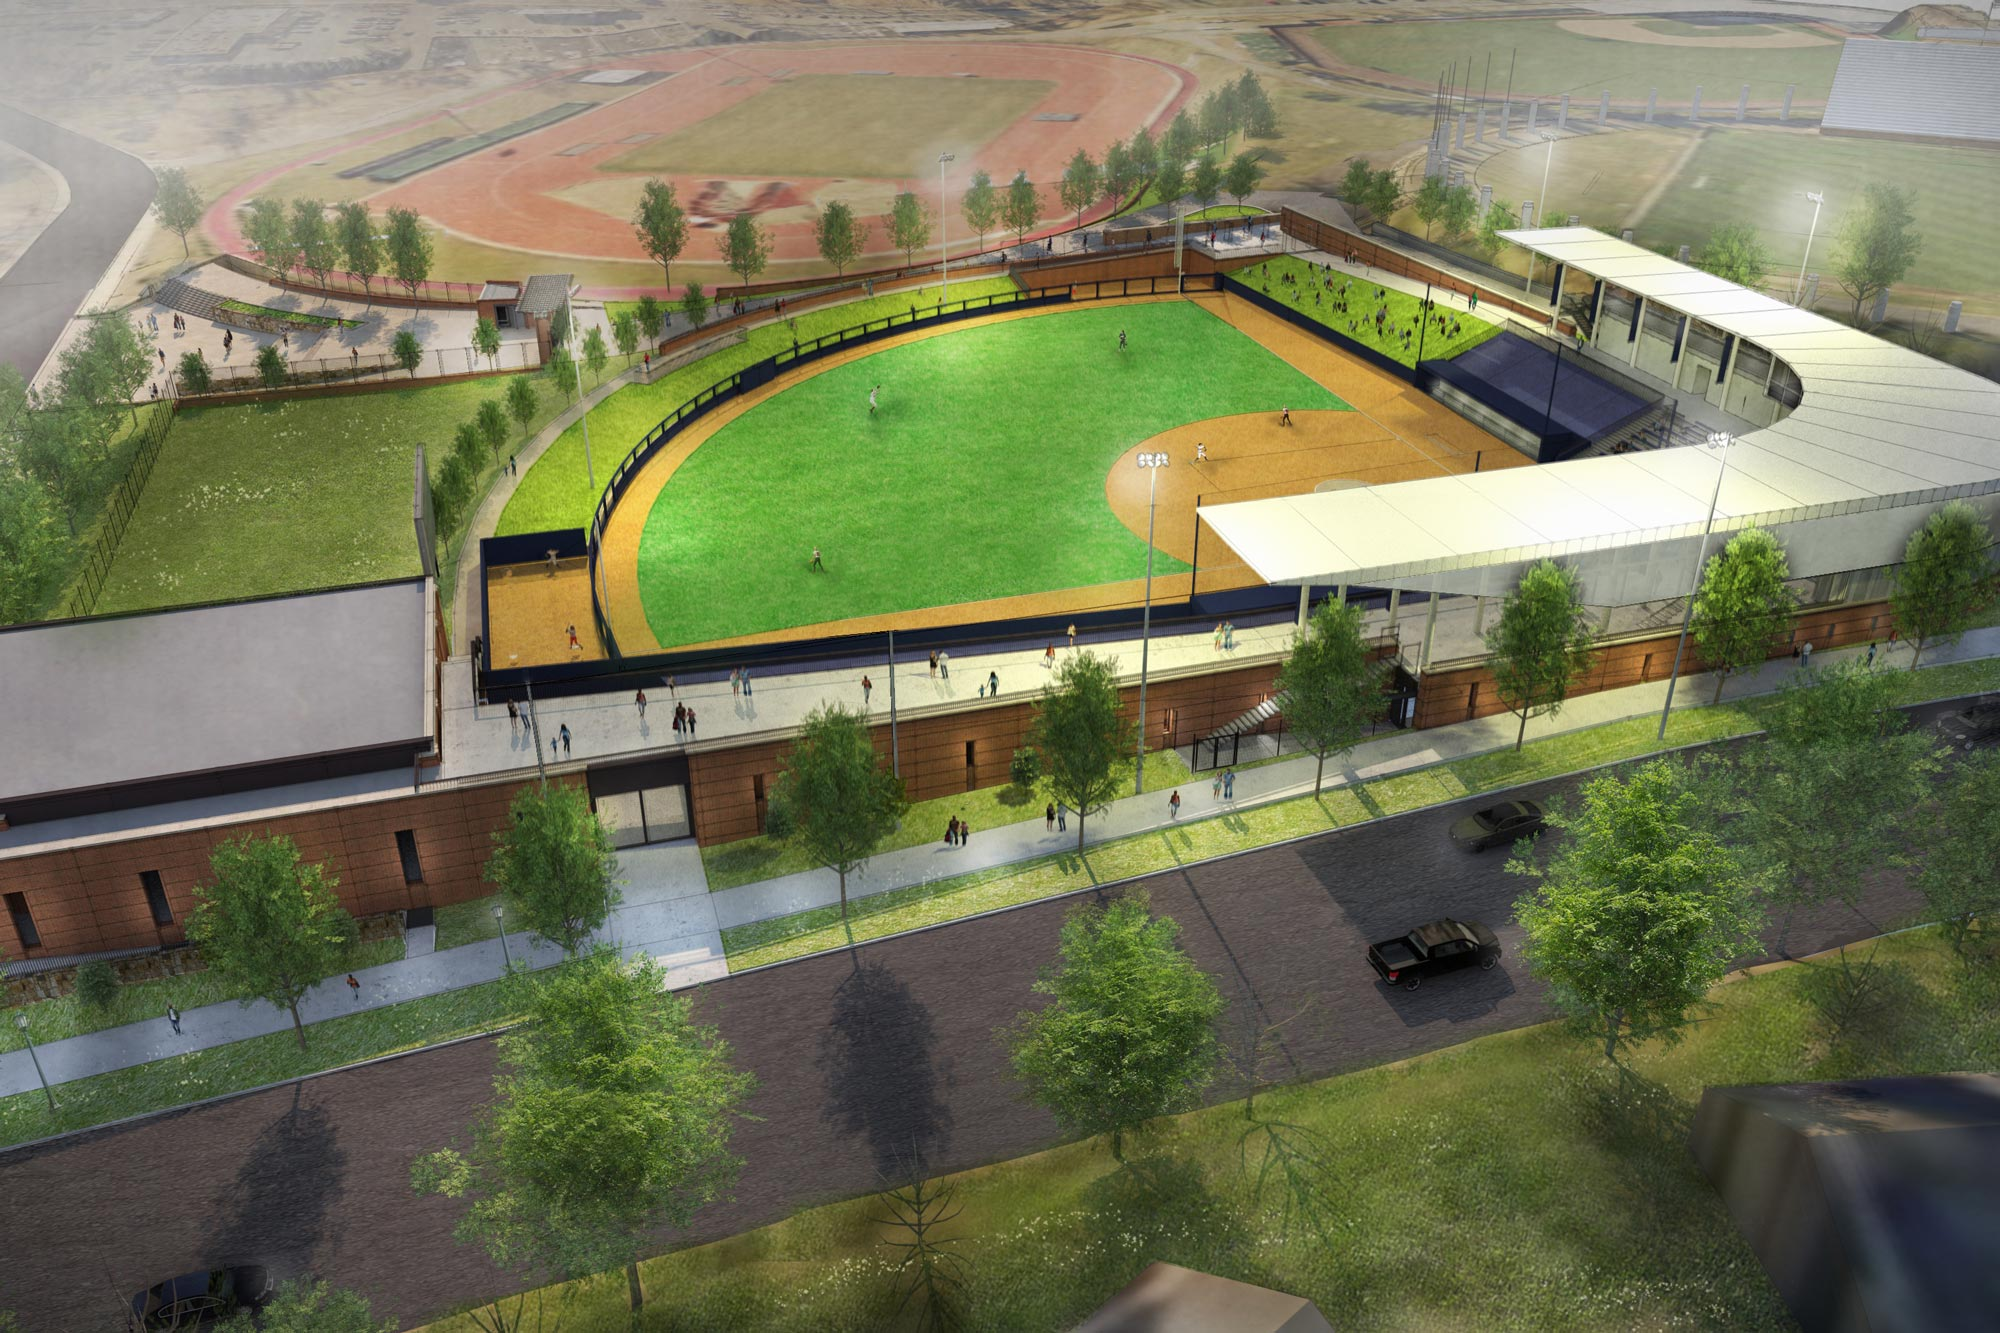 Palmer Park, located adjacent to Lannigan Field, Klöckner Stadium and Disharoon Park, is slated to open in time for the spring softball season.